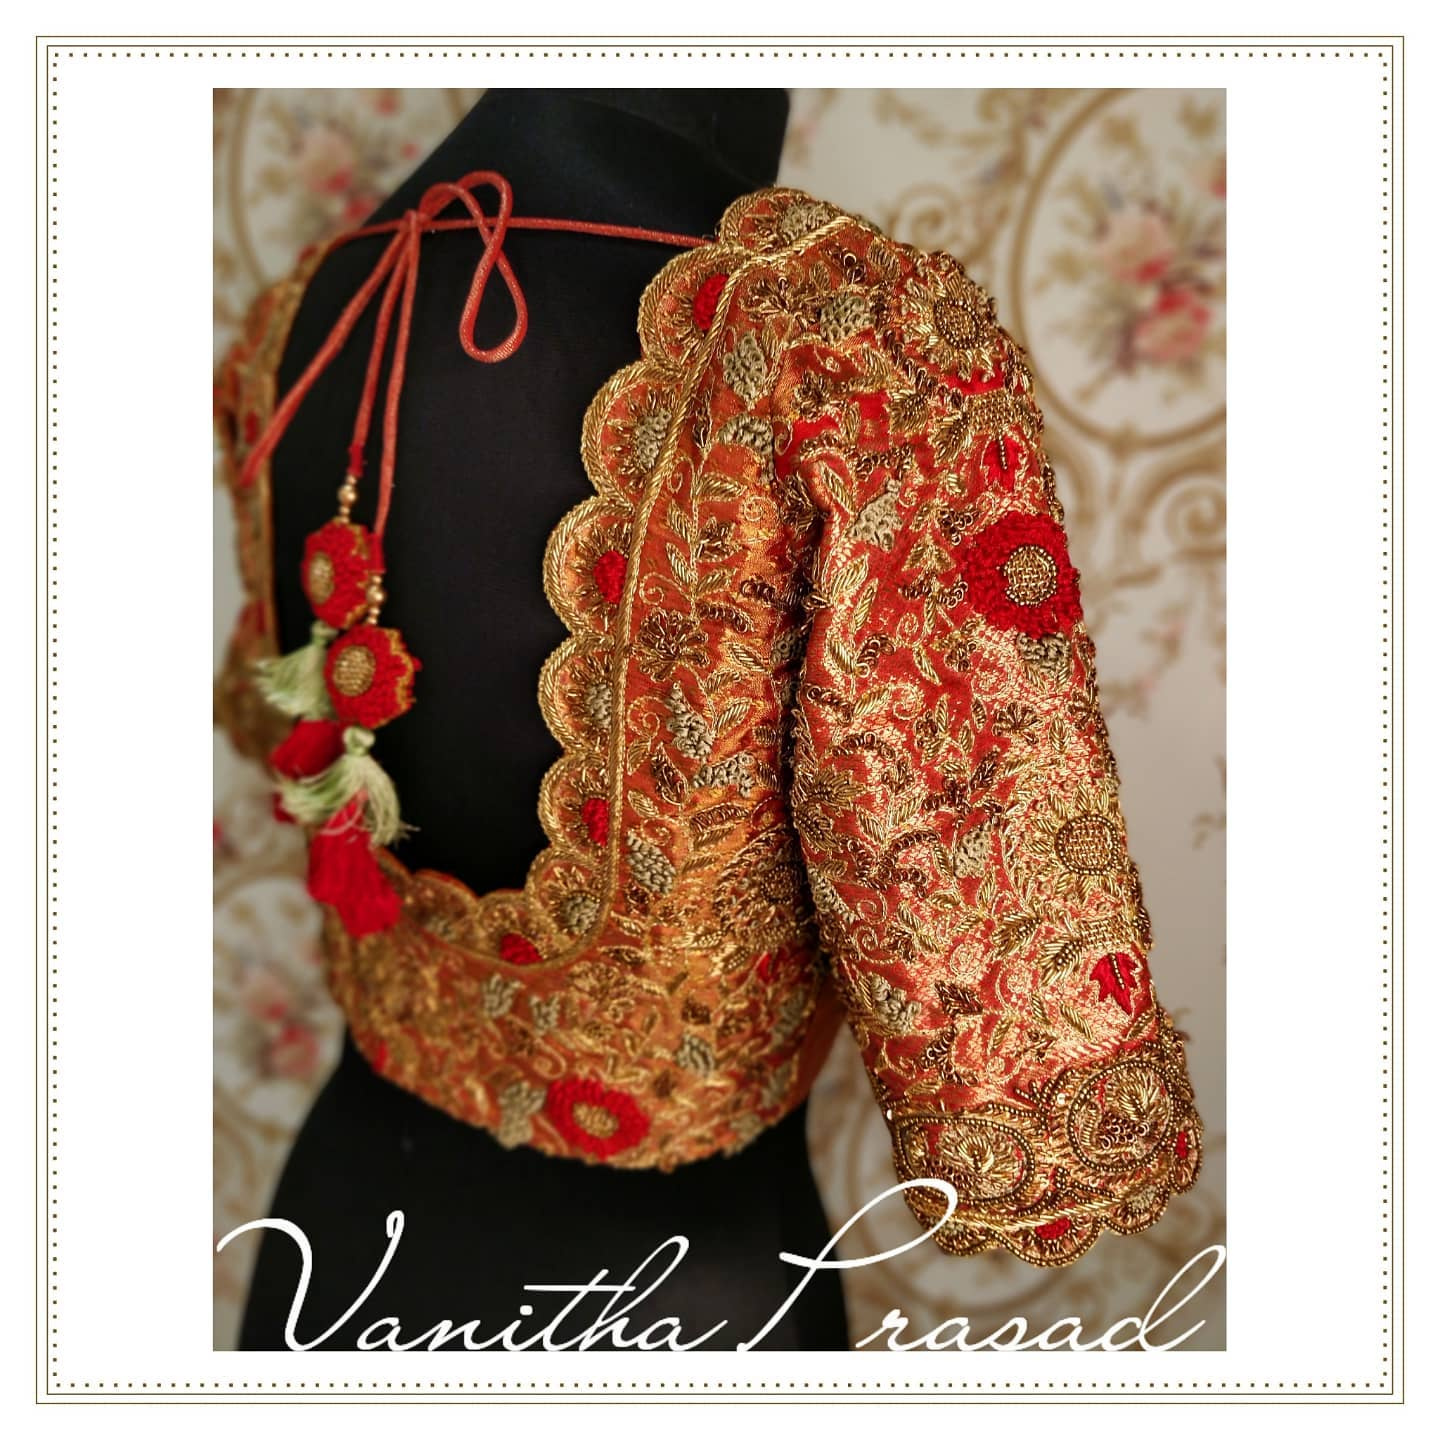 Bridal blouse design in gold and red without contrast shades. 2021-09-14